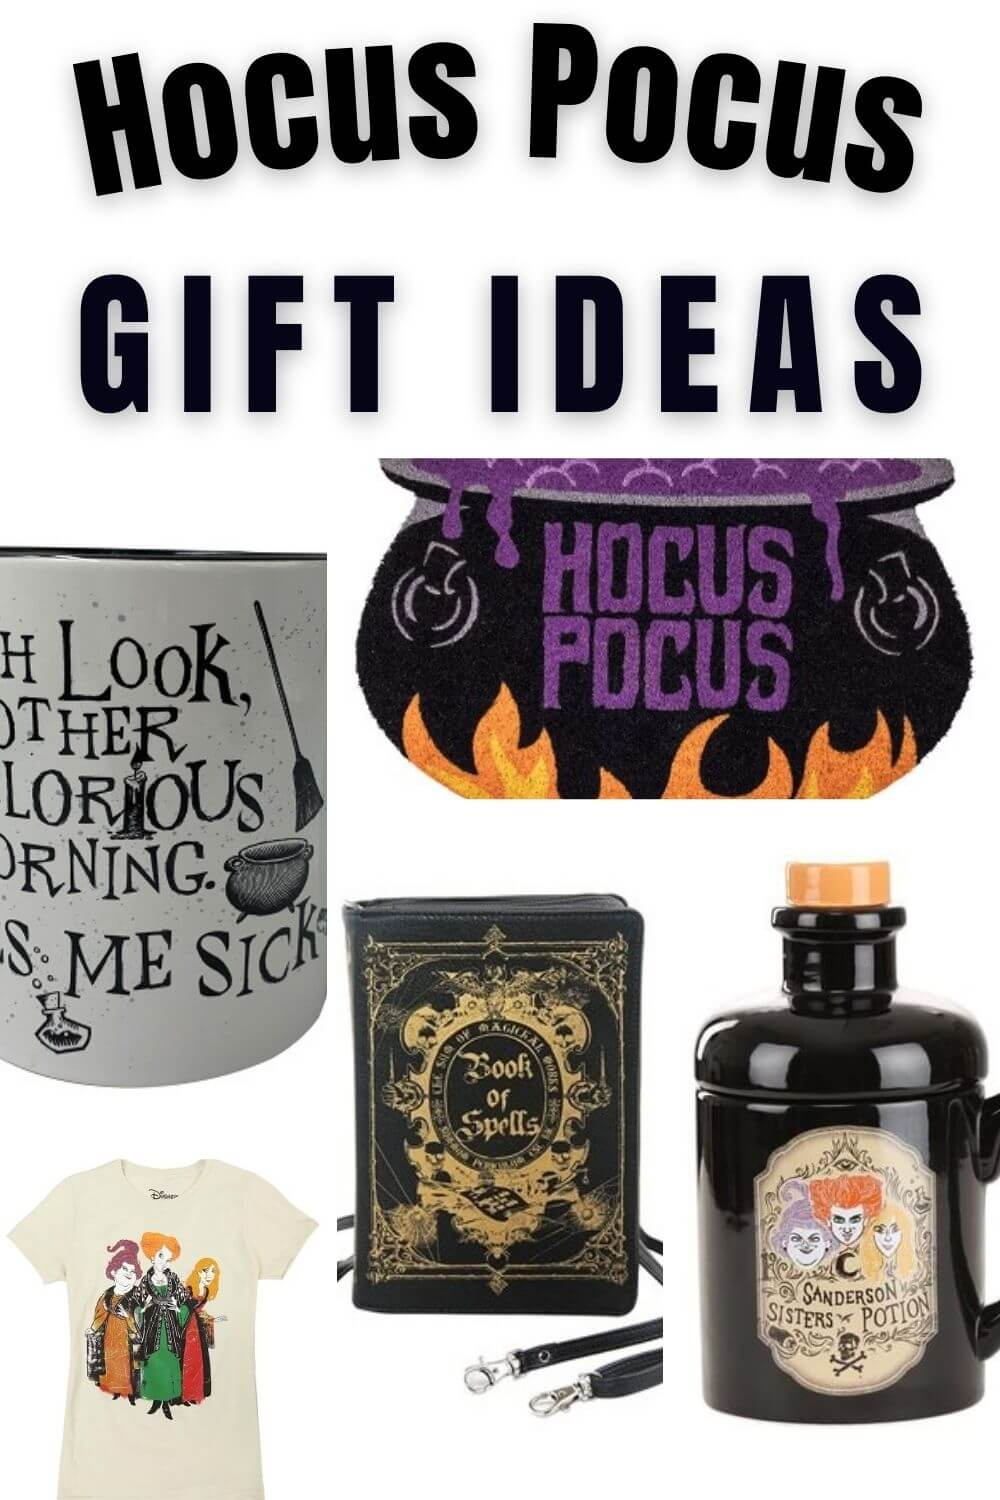 Hocus Pocus Gifts - Presents For People Who Love Hocus Pocus